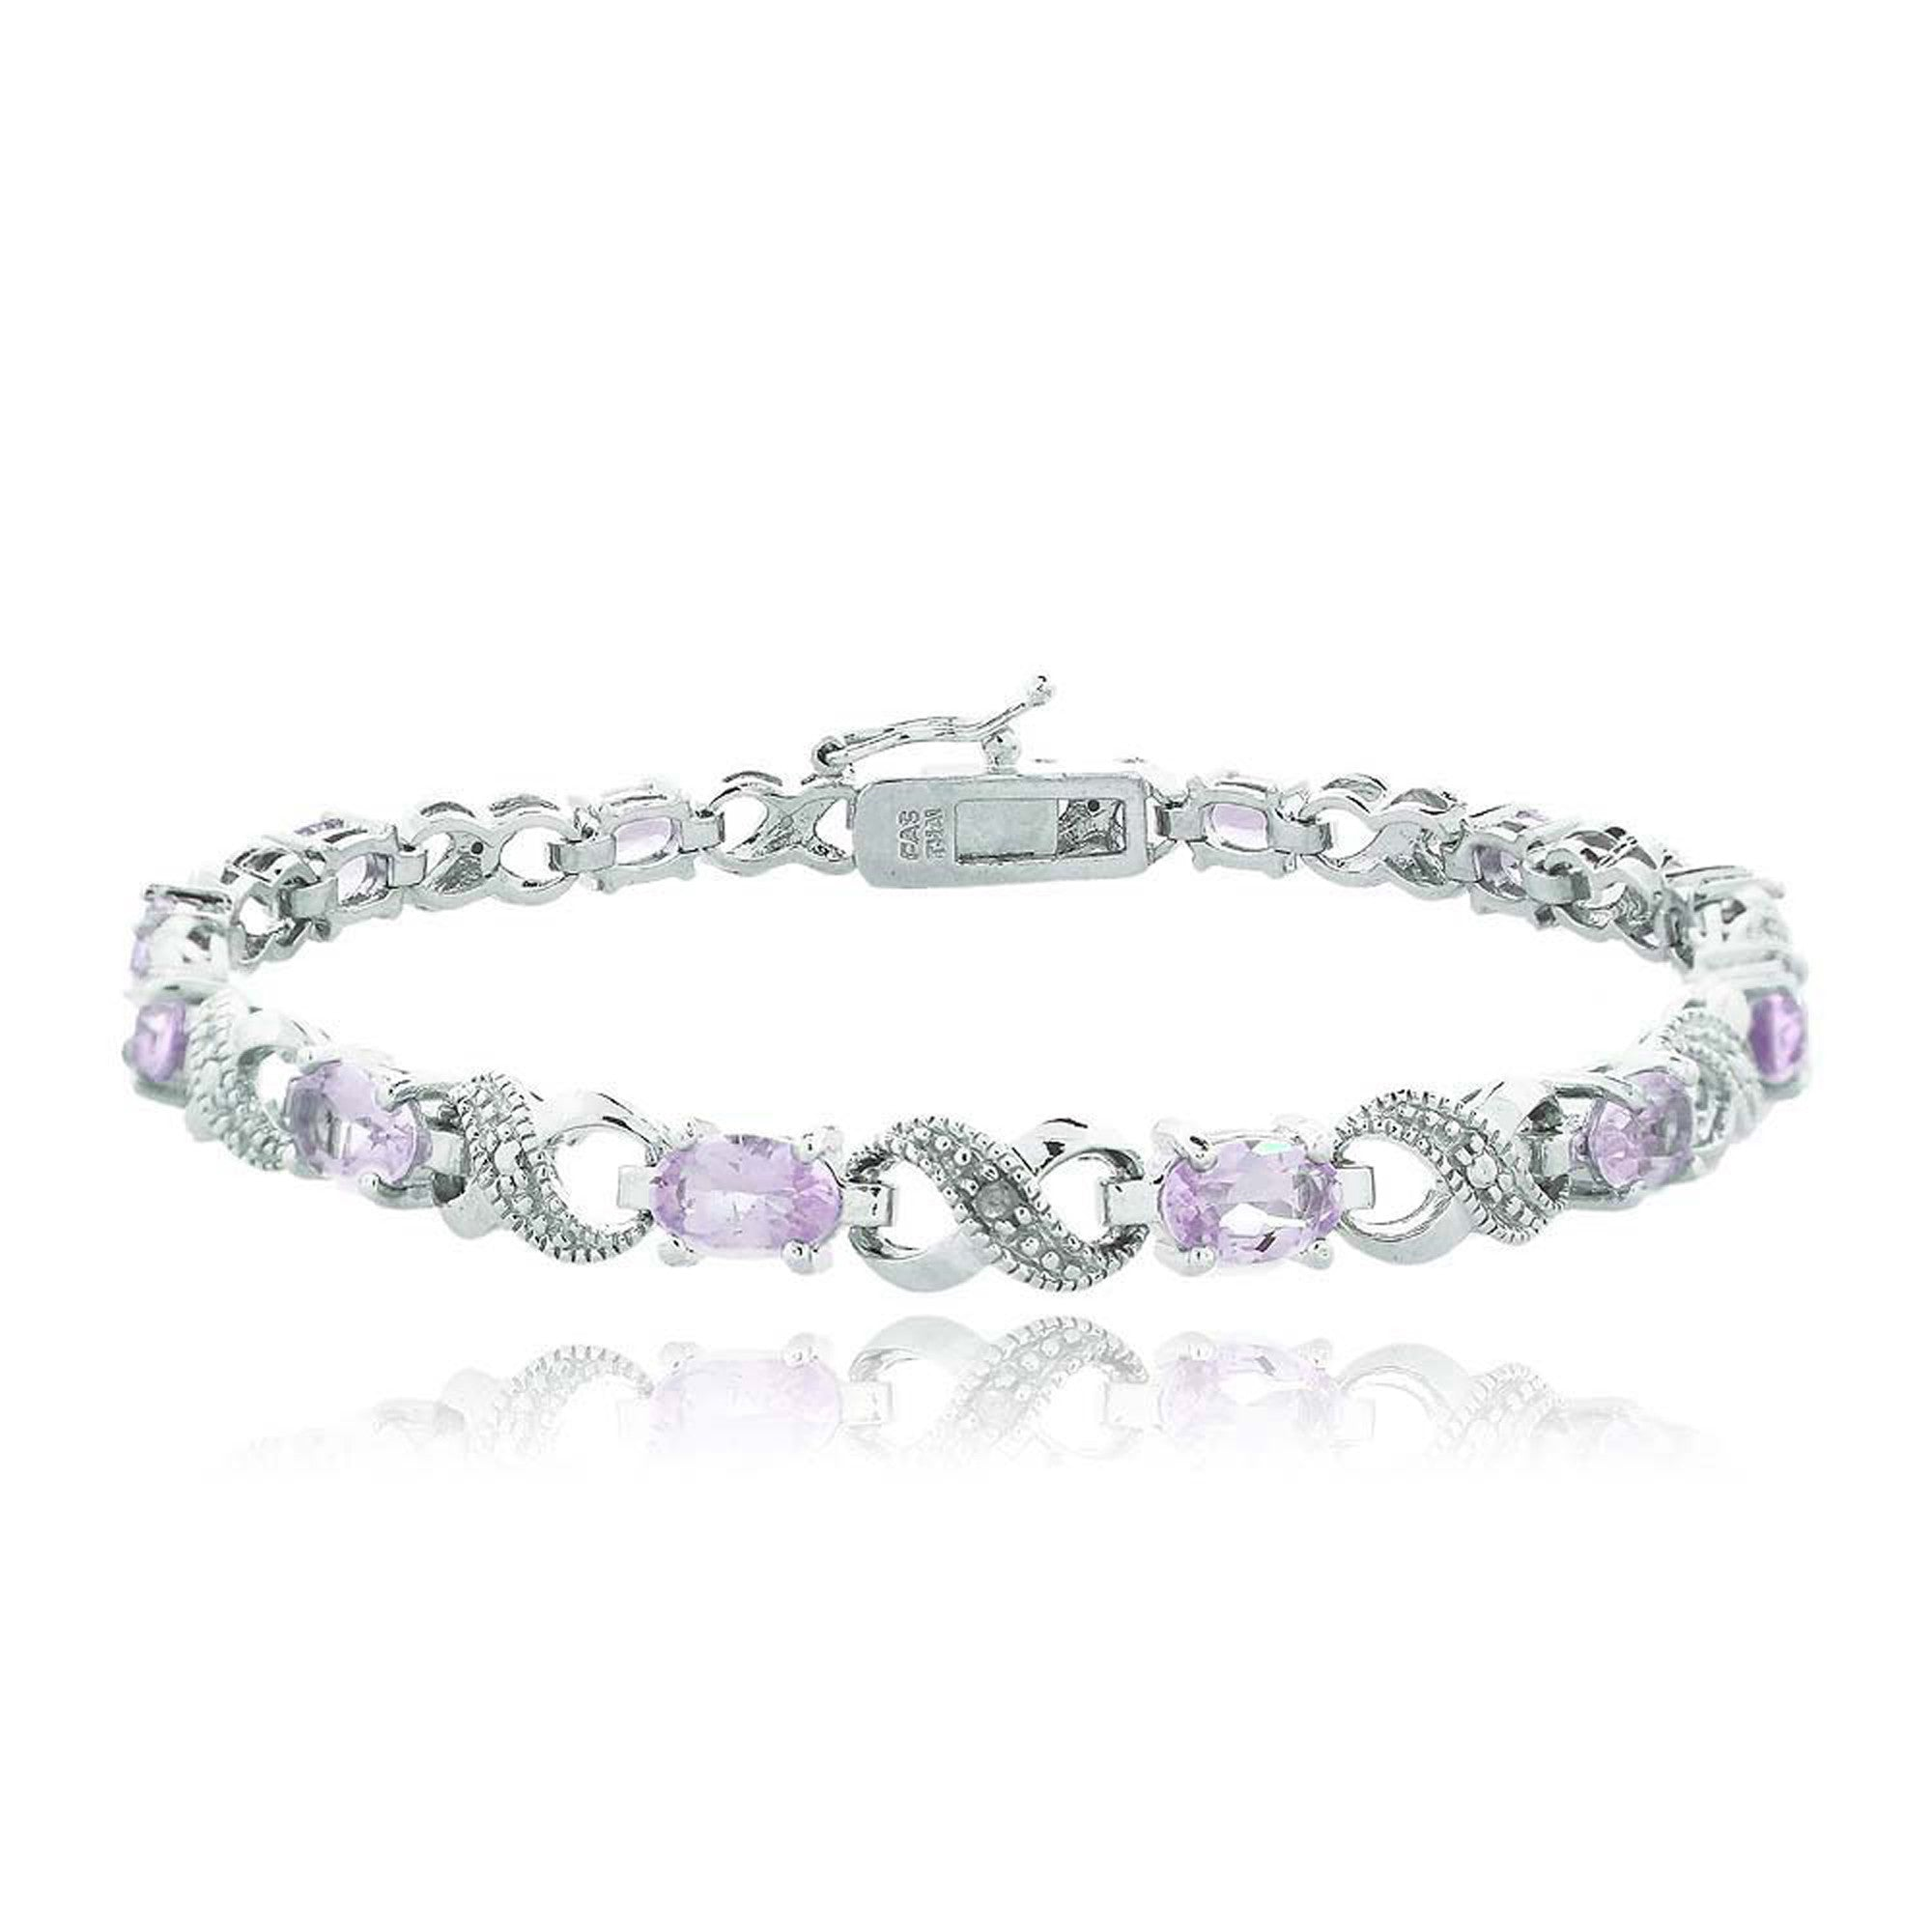 Infinity Link Bracelet With Diamond & Gem Accents - Amethyst